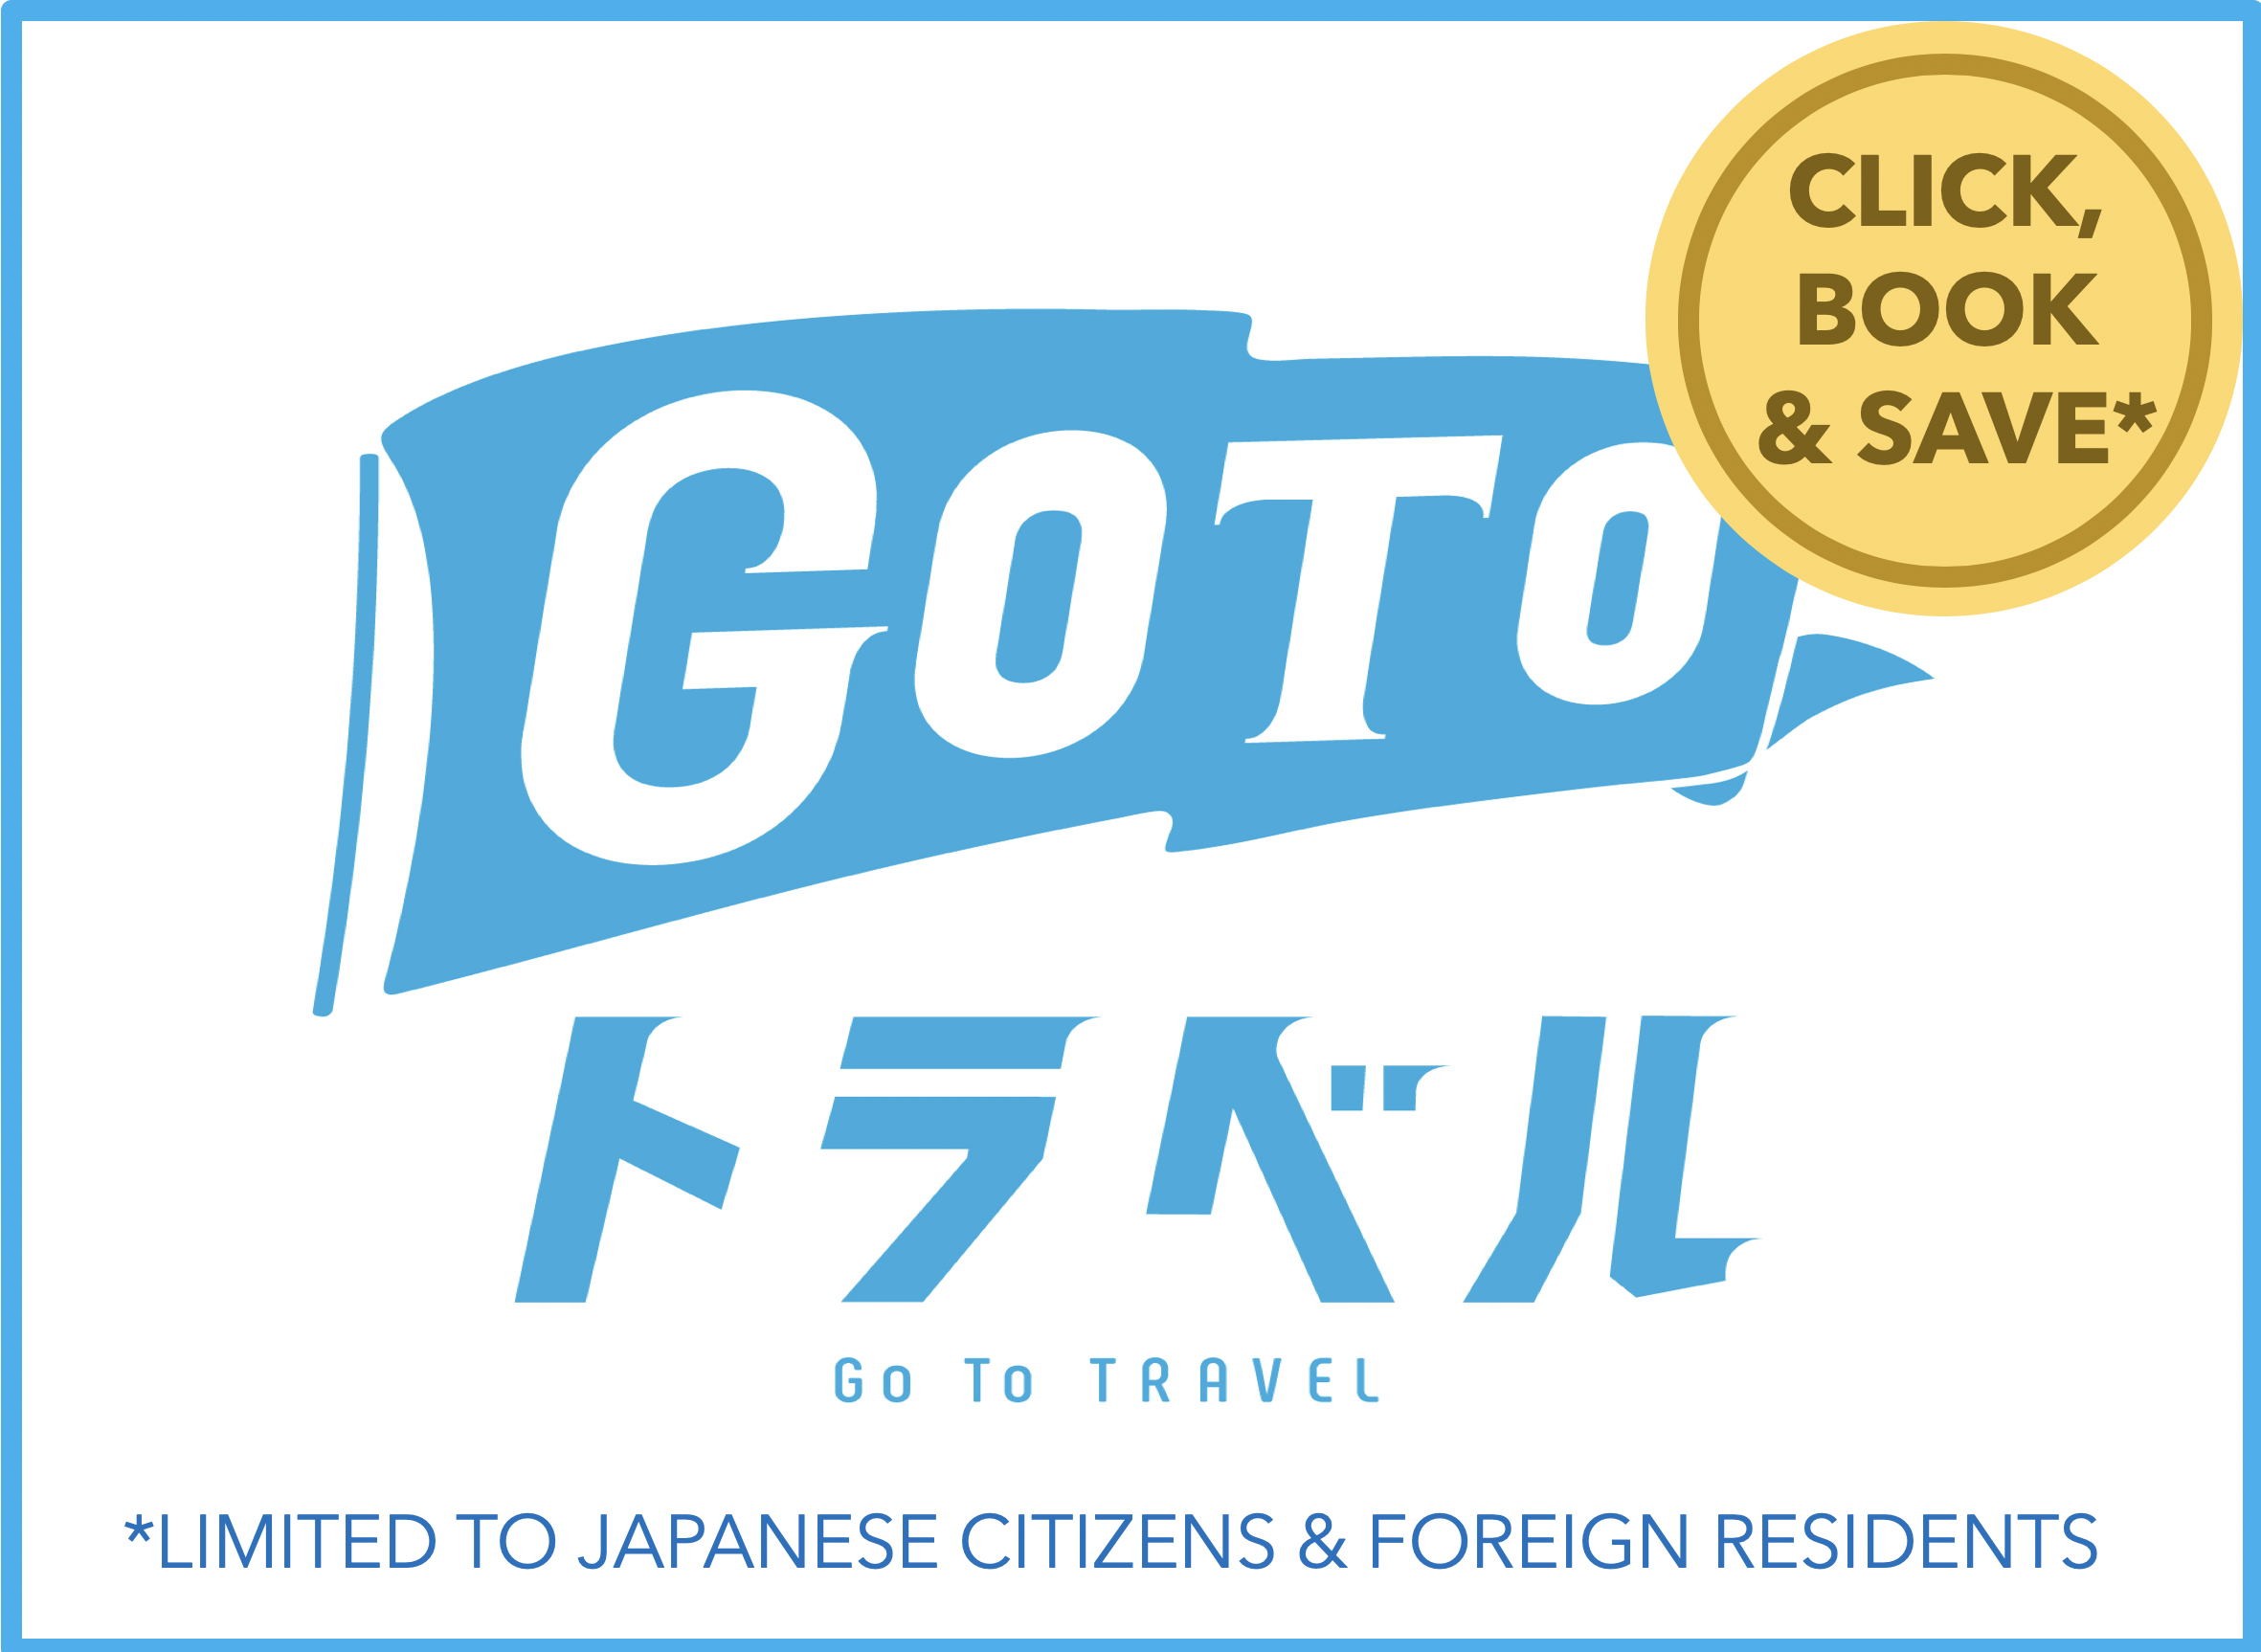 go-to-travel-banner-full